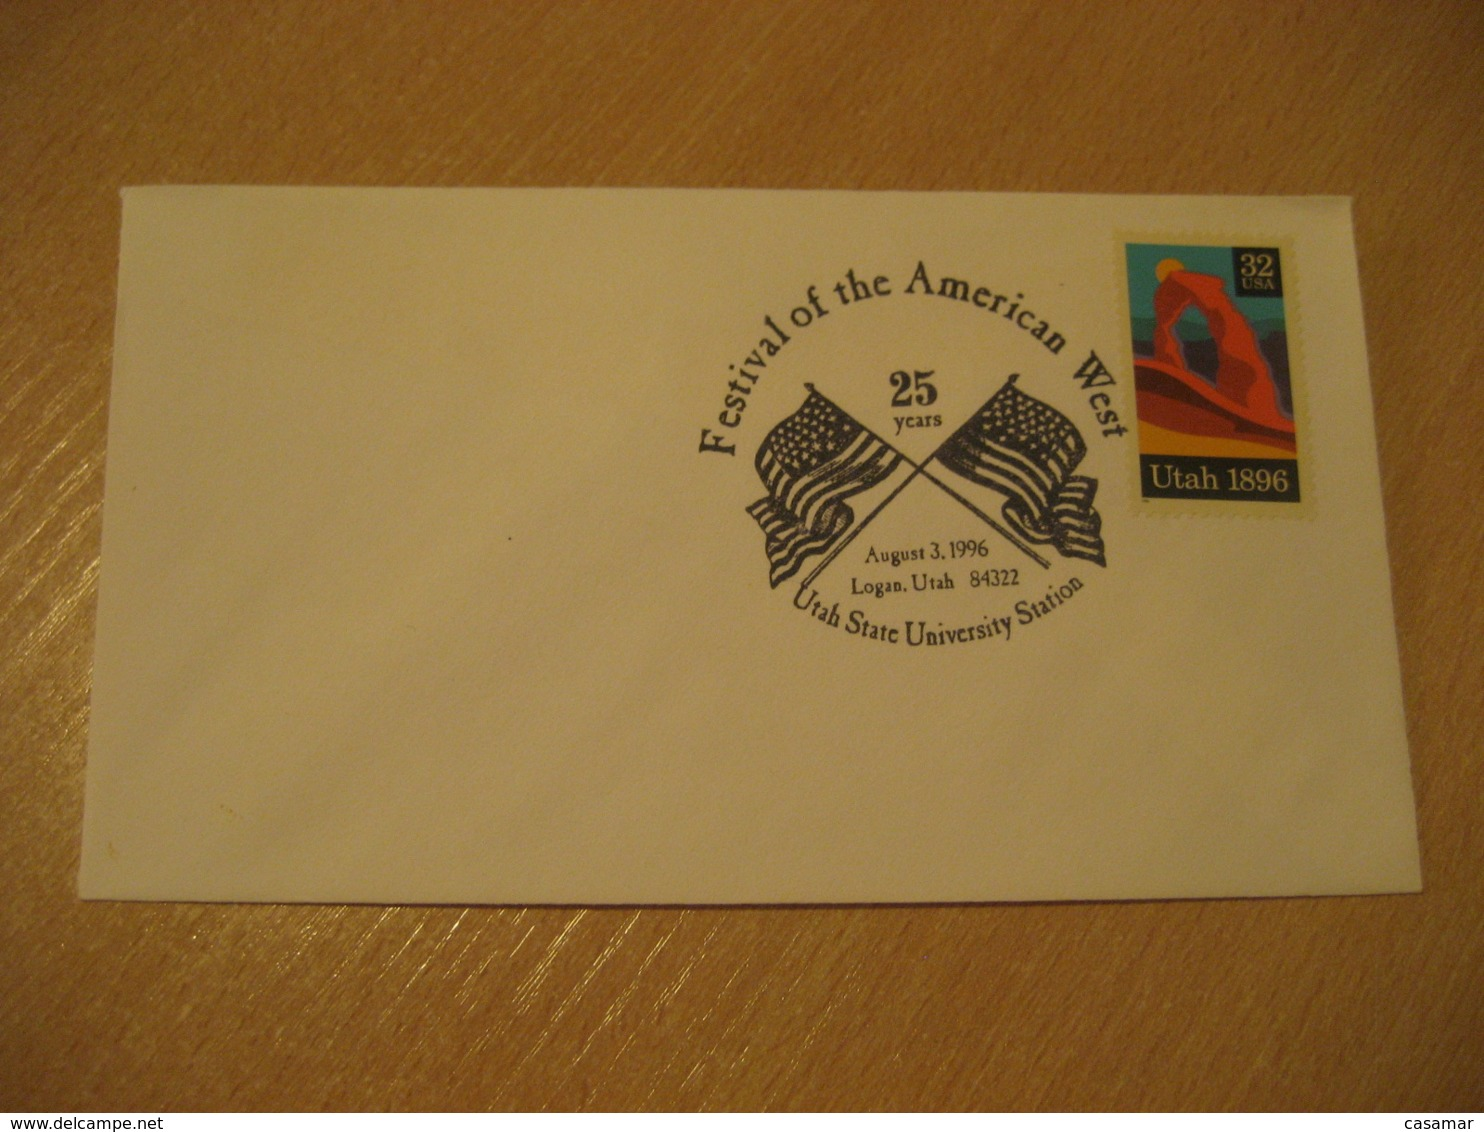 LOGAN 1996 American West University Flag Flags Cancel Cover USA - Briefe